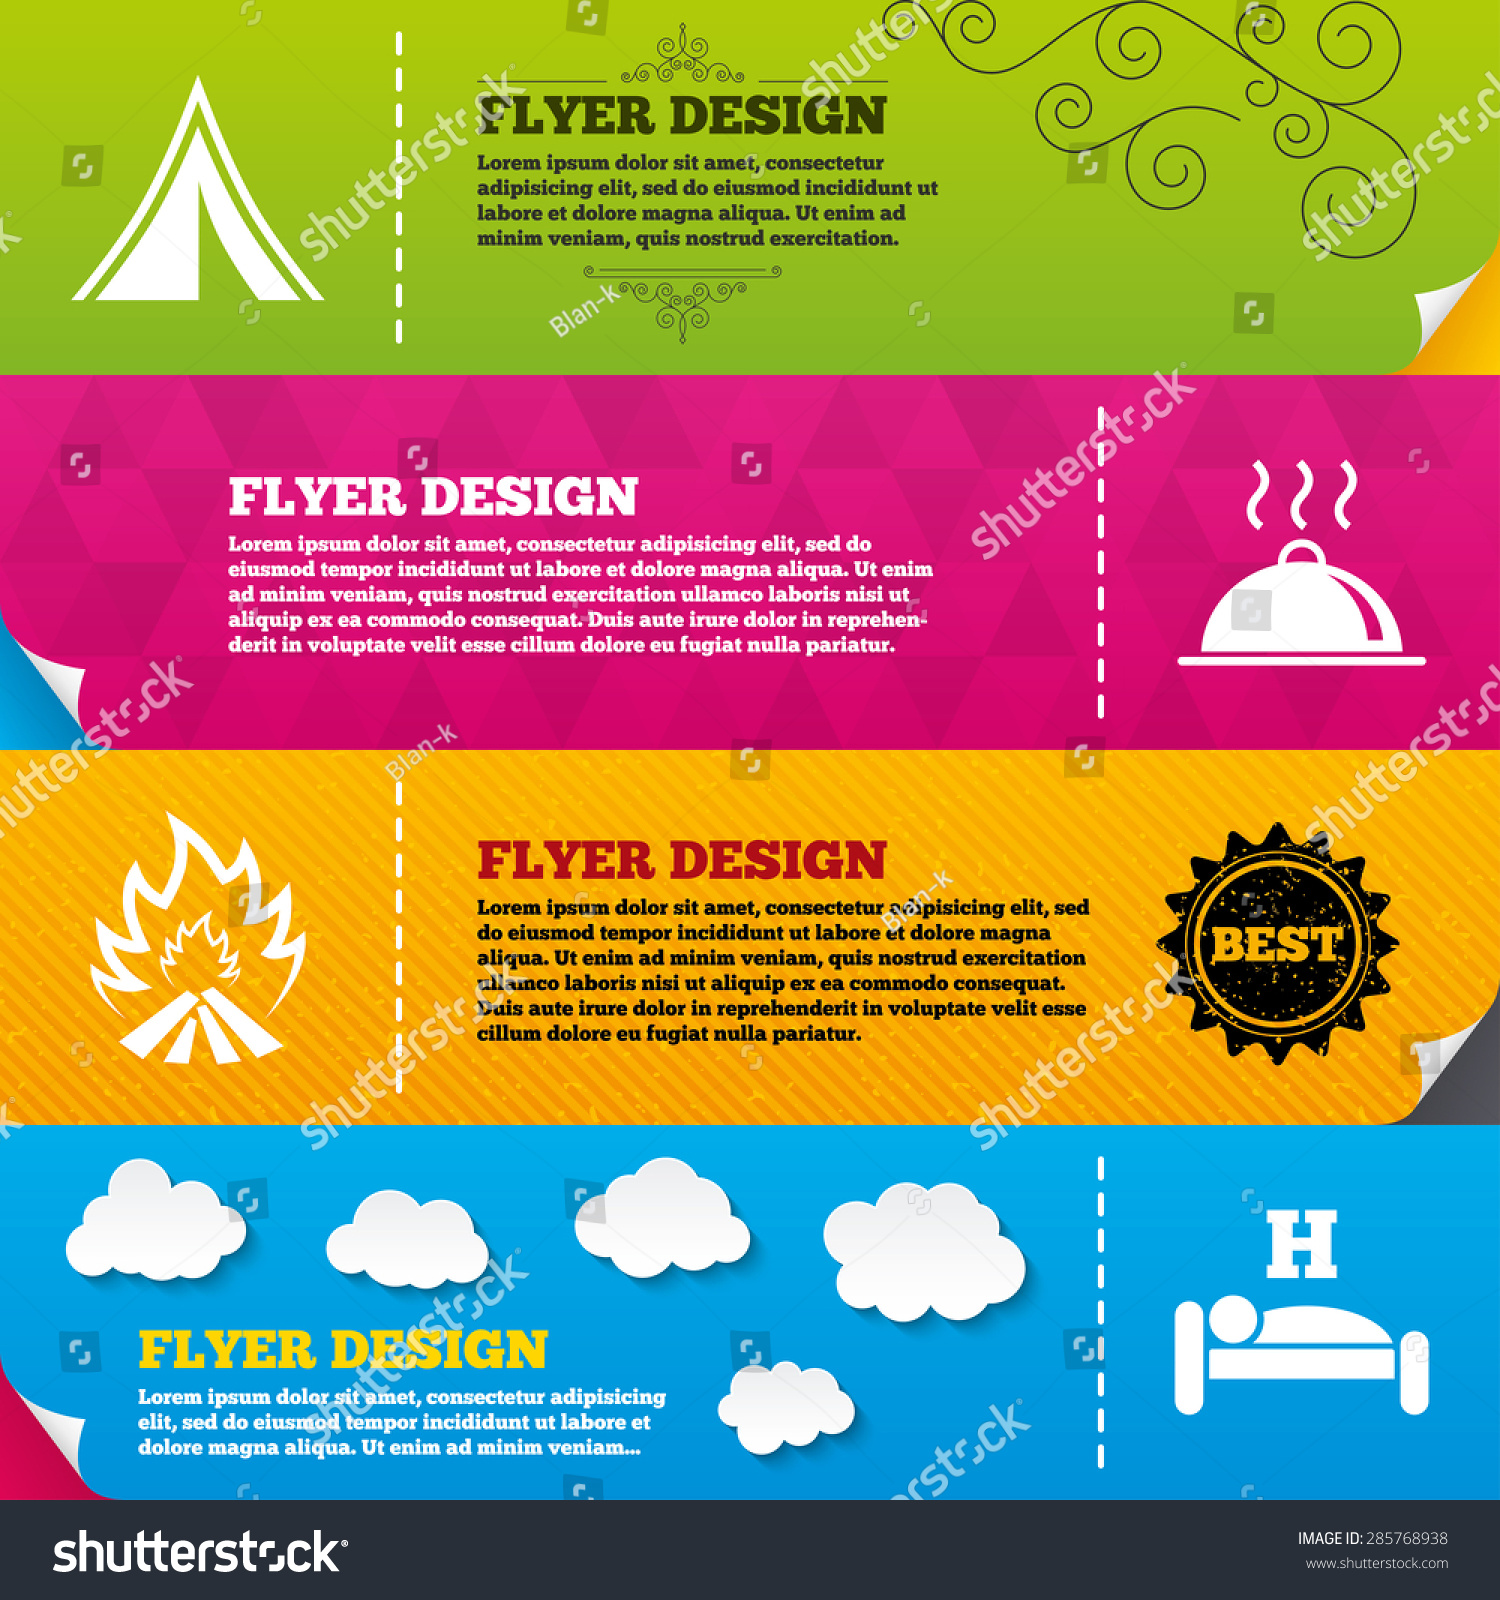 flyer brochure designs hot food sleep stock vector  flyer brochure designs hot food sleep camping tent and fire icons hotel